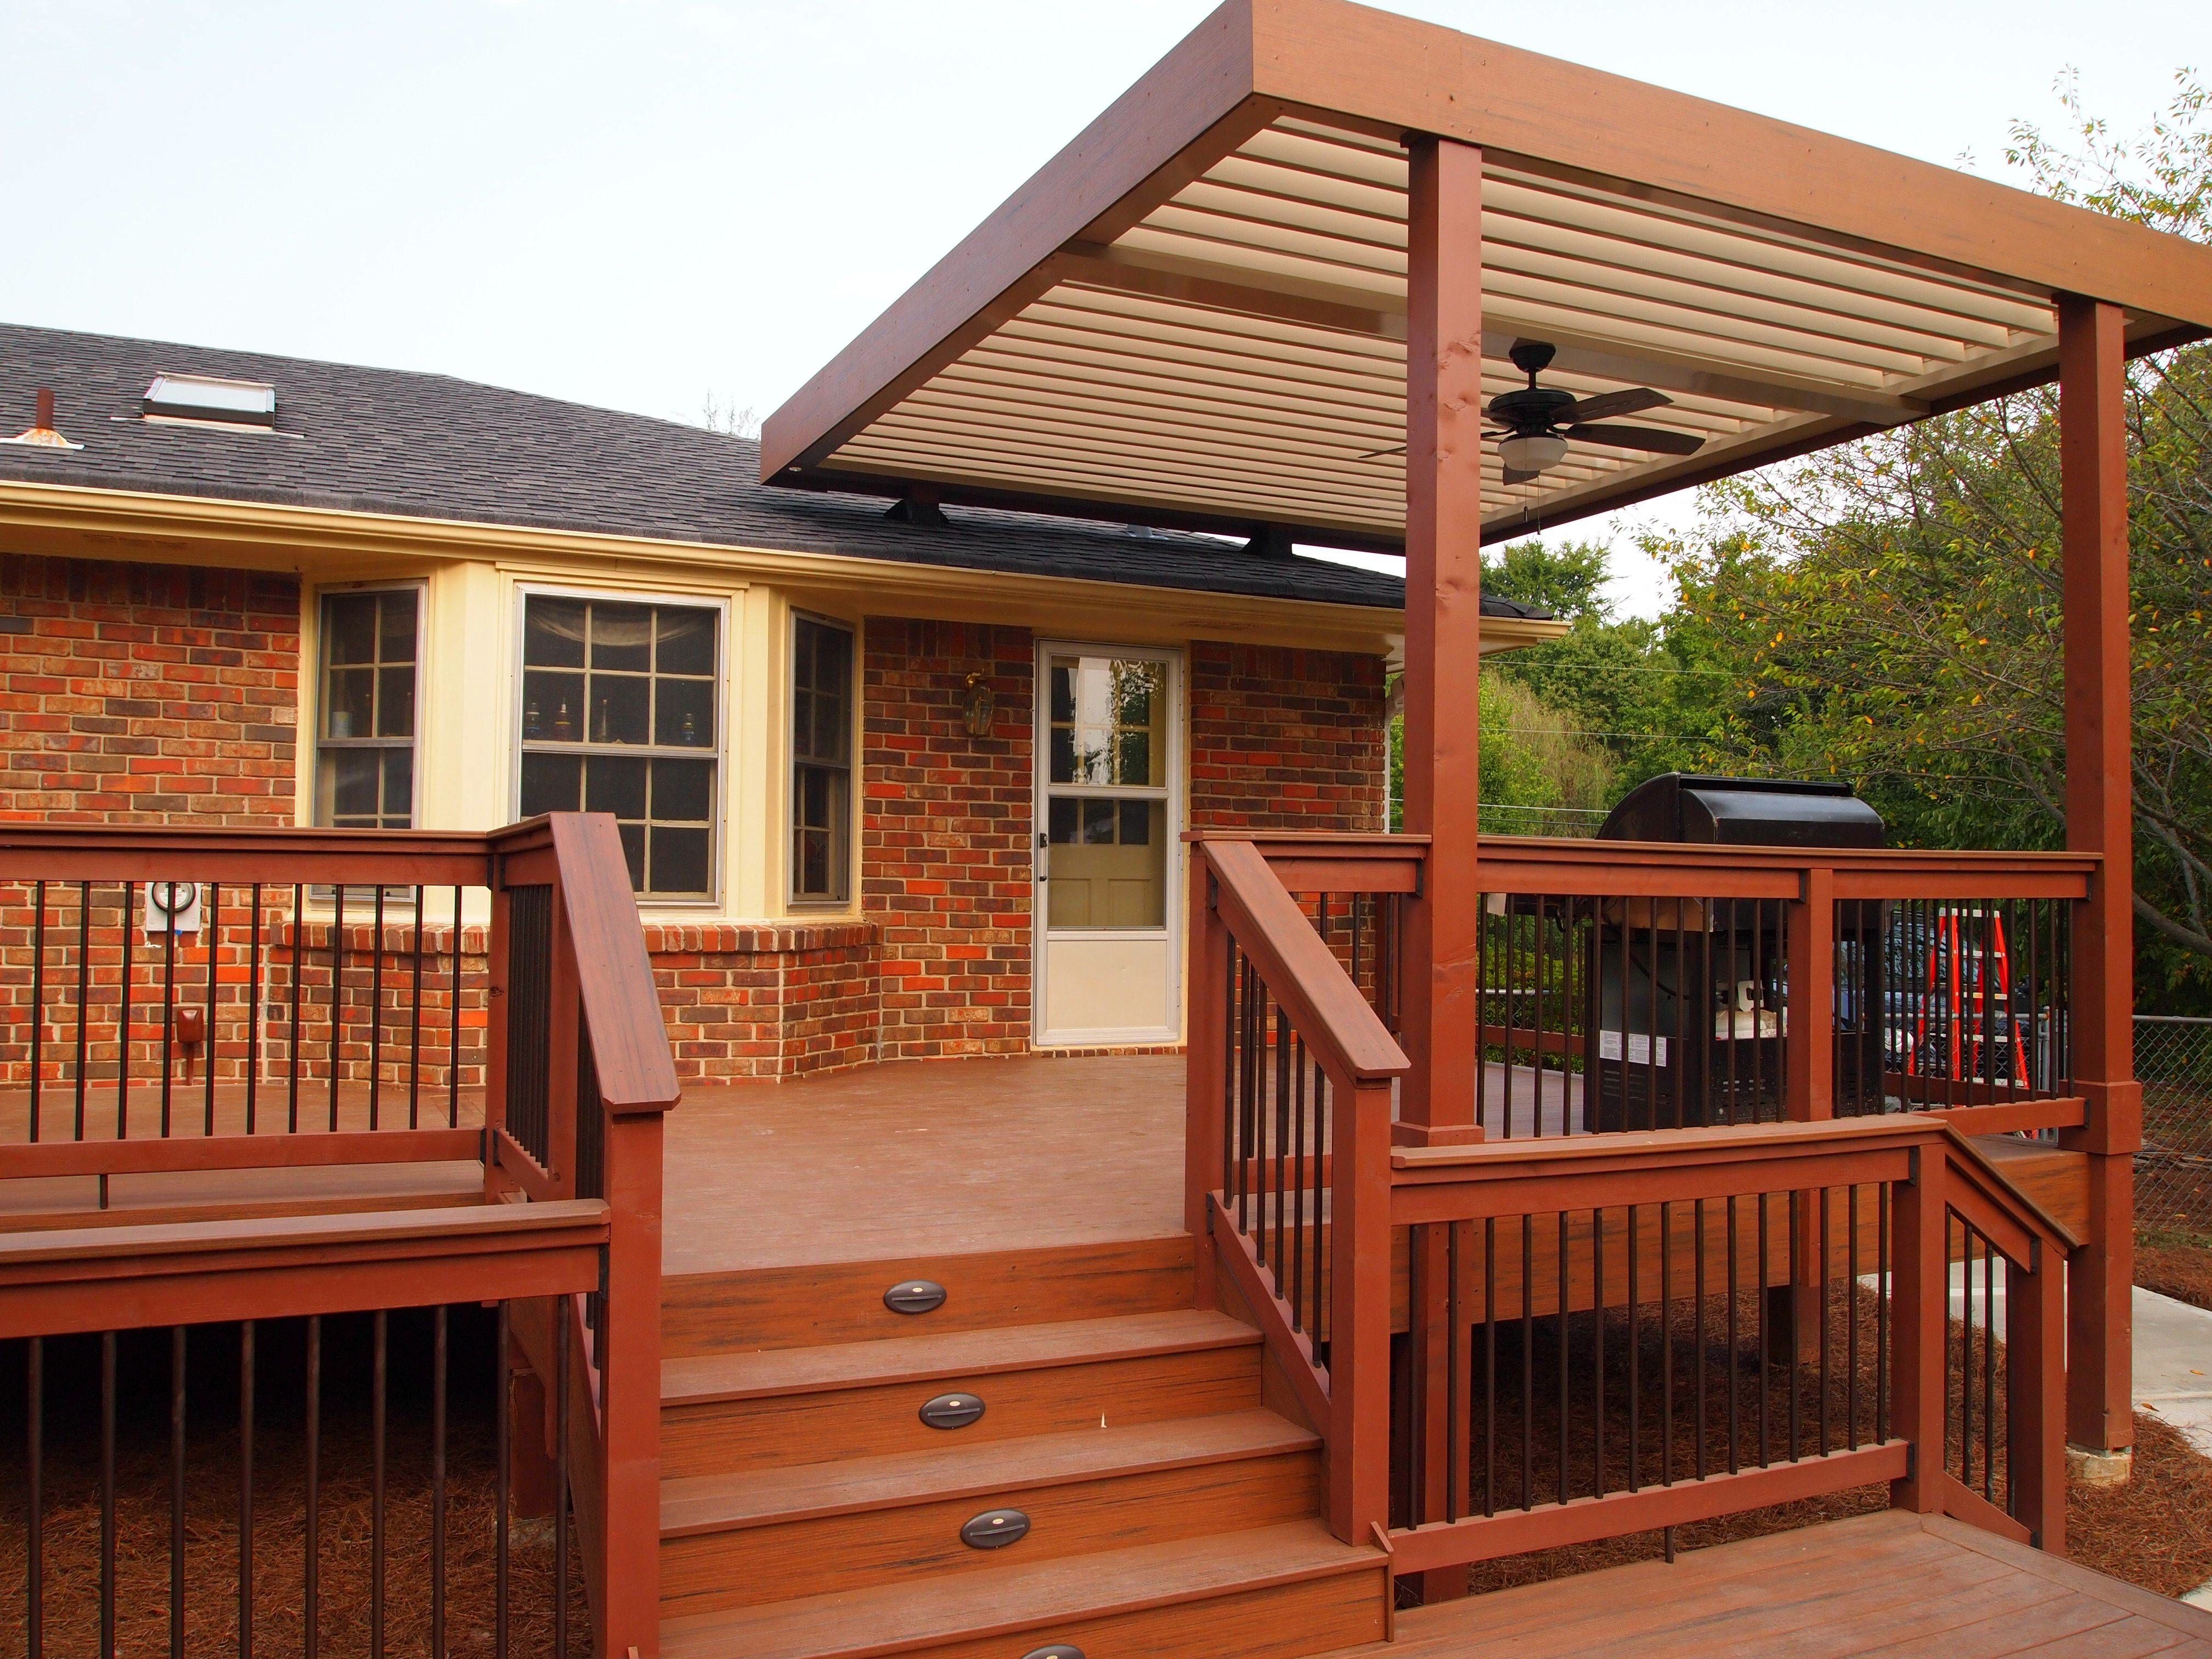 Wood Deck Plans And Ideas Simple Covered Deck Designs Ideas Patio Transition Ideas Covered Deck Designs Patio Deck Designs